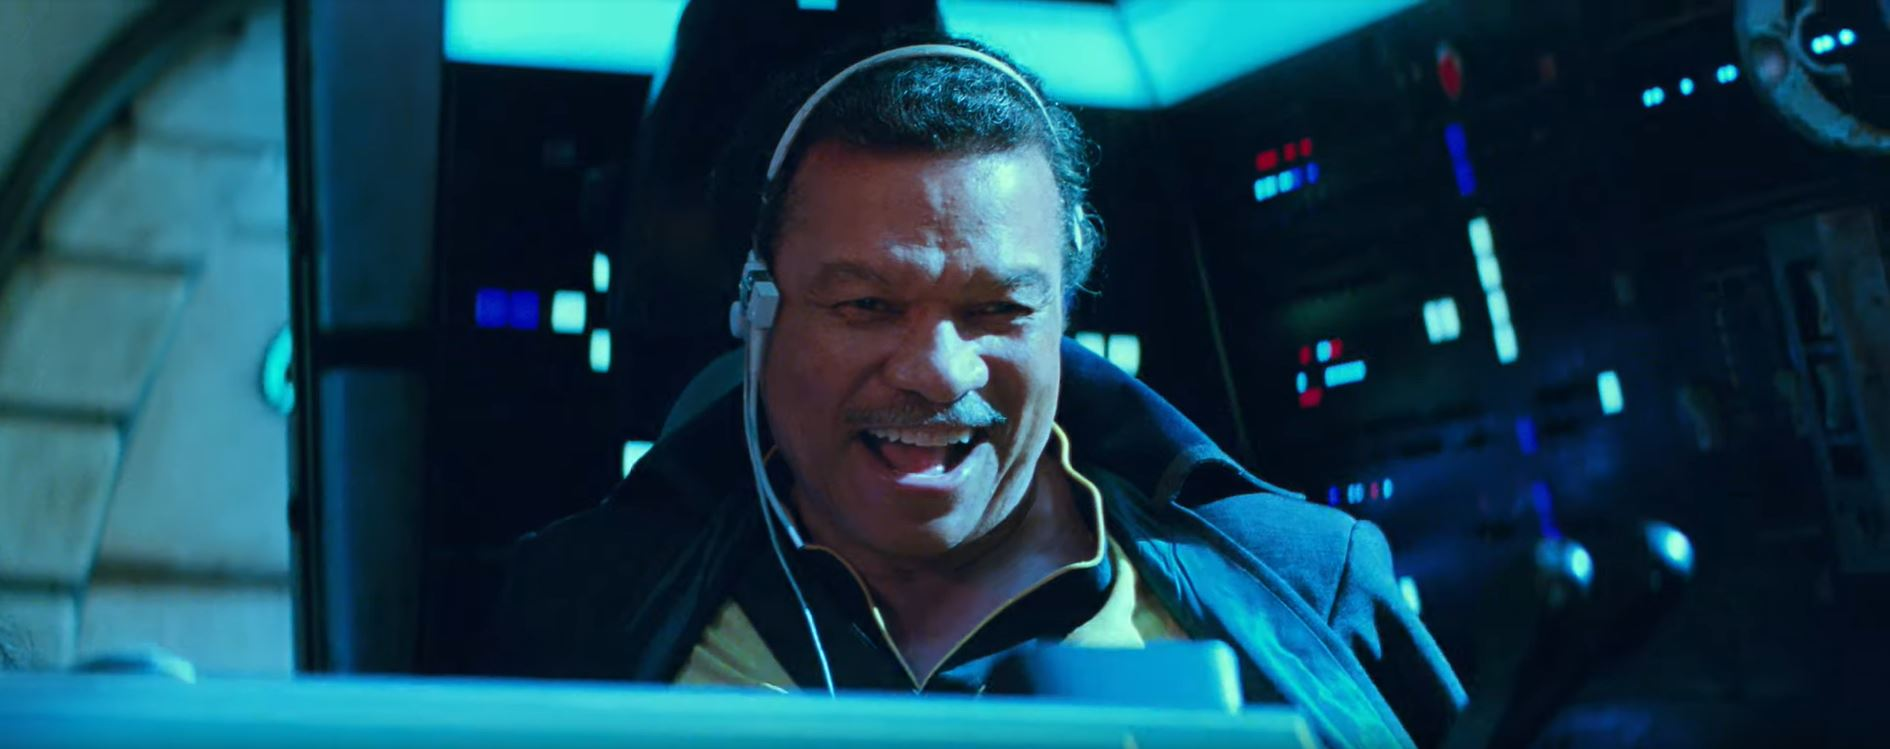 Star Wars The Rise of Skywalker Billy Dee Williams as Lando Calrissian inside the Millennium Falcon